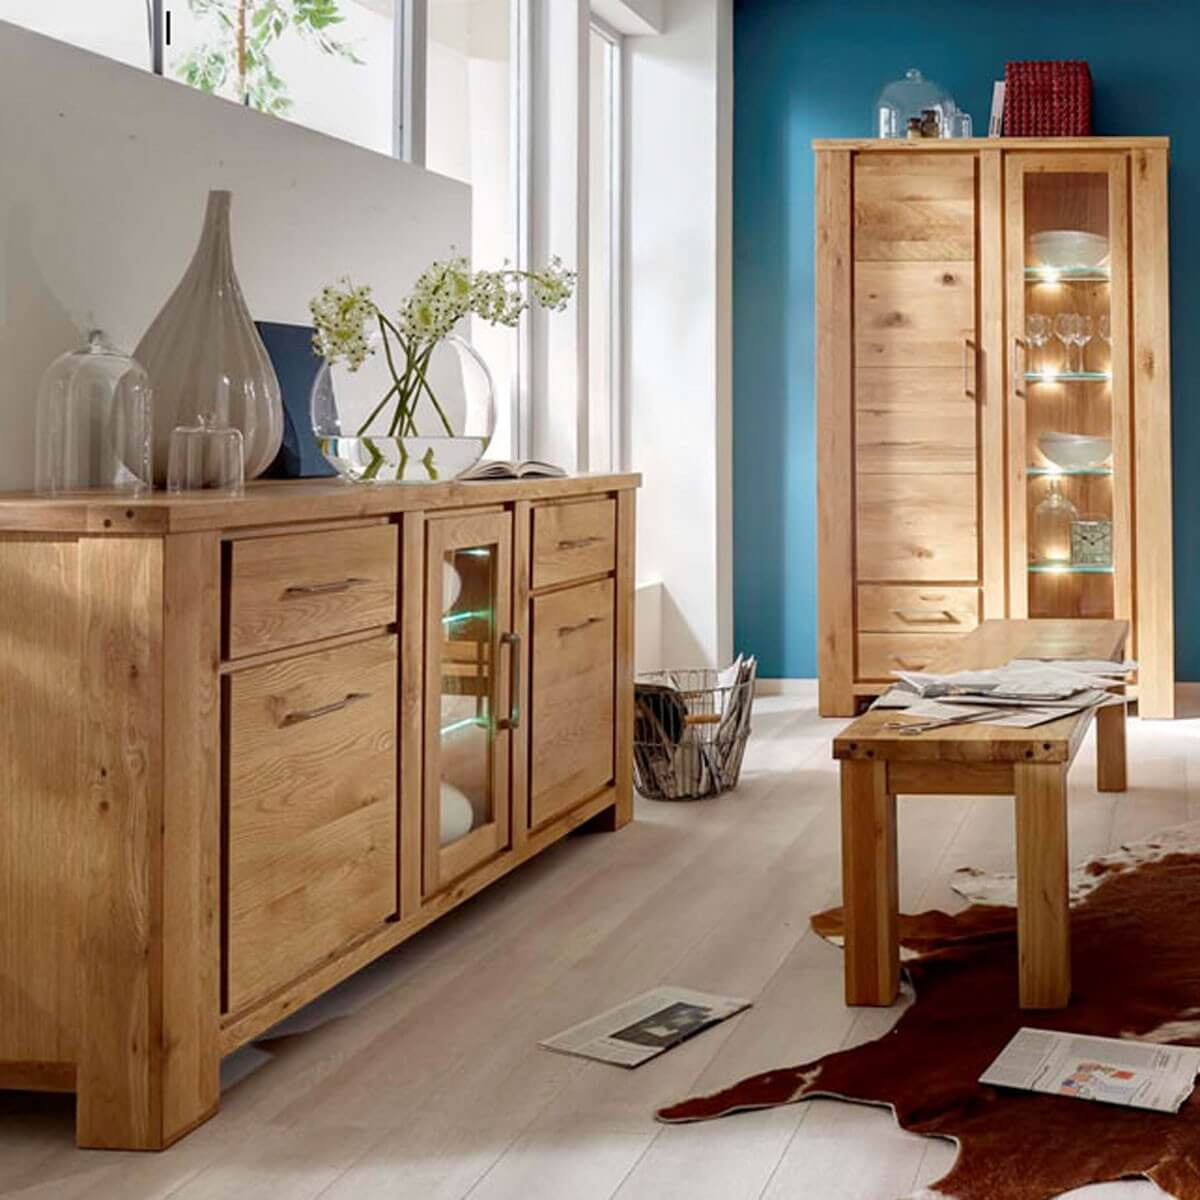 sideboard arkl nd mit beleuchtung in wildeiche teilmassiv ge lt. Black Bedroom Furniture Sets. Home Design Ideas